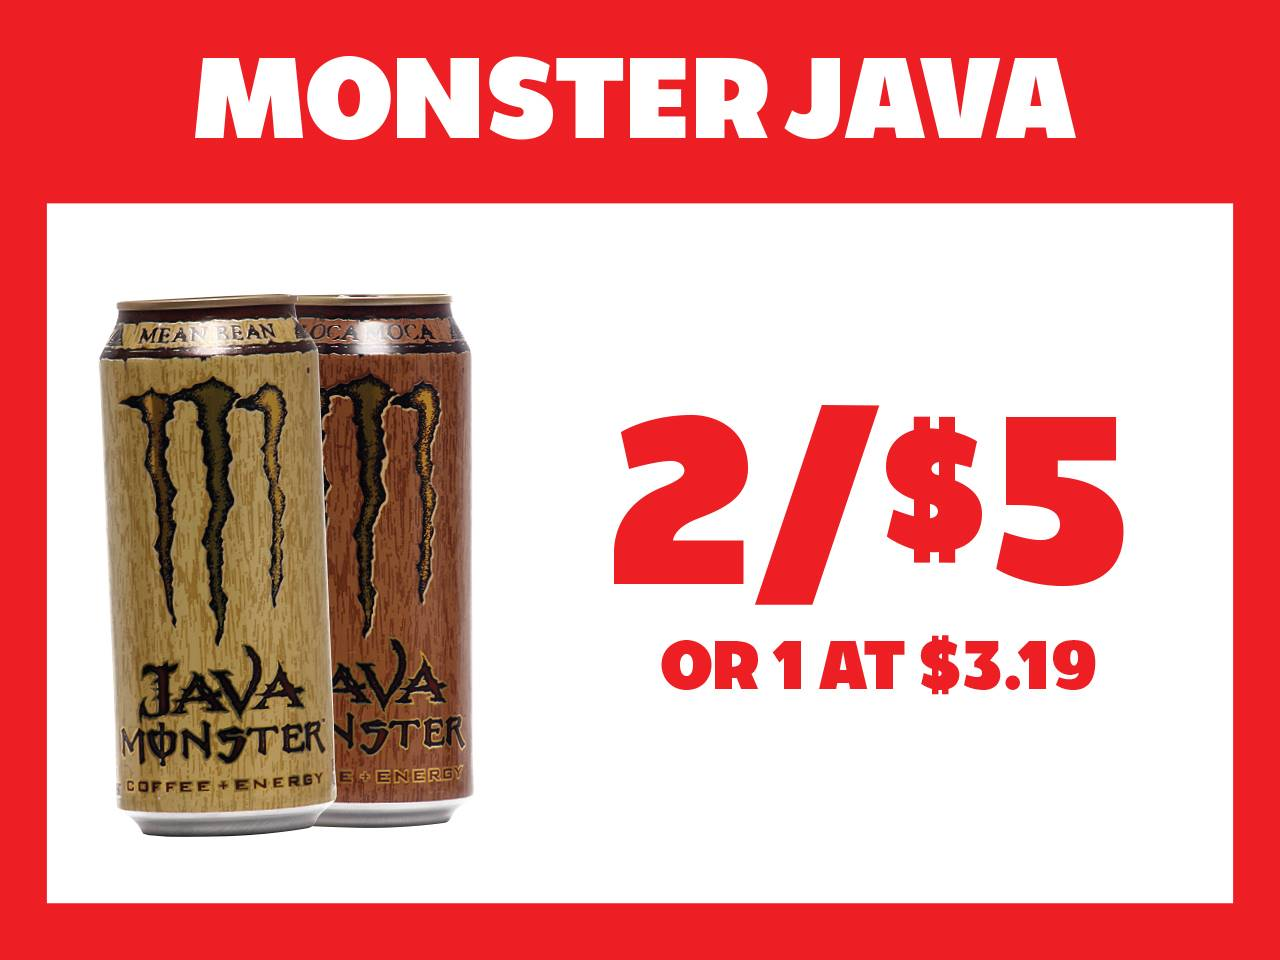 Monster Java 2 for $5 or 1 at $3.19